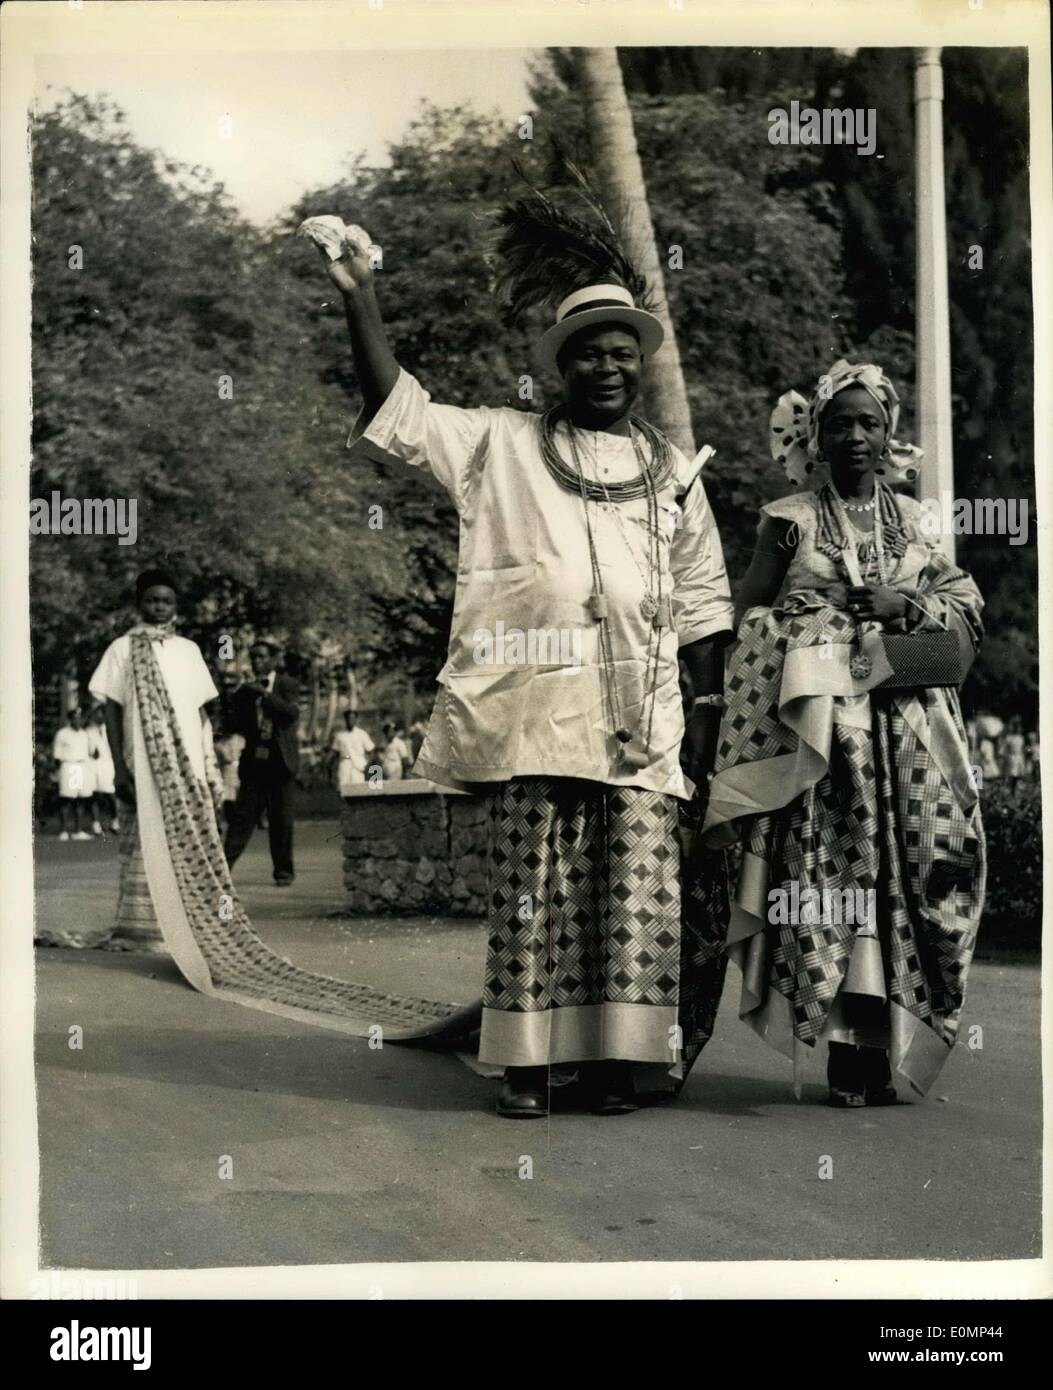 Feb. 02, 1956 - Royal Tour Of Nigeria: Nigerian V.I.P.'s Meet the Queen: Photo Shows Chief Festus Okotie-Eboh, Minister of Labour, arriving at the House of Representatives in Lagos, with his wife, Victoria . His servant followed bearing his 20-foot train, which he wears around his neck. - Stock Image